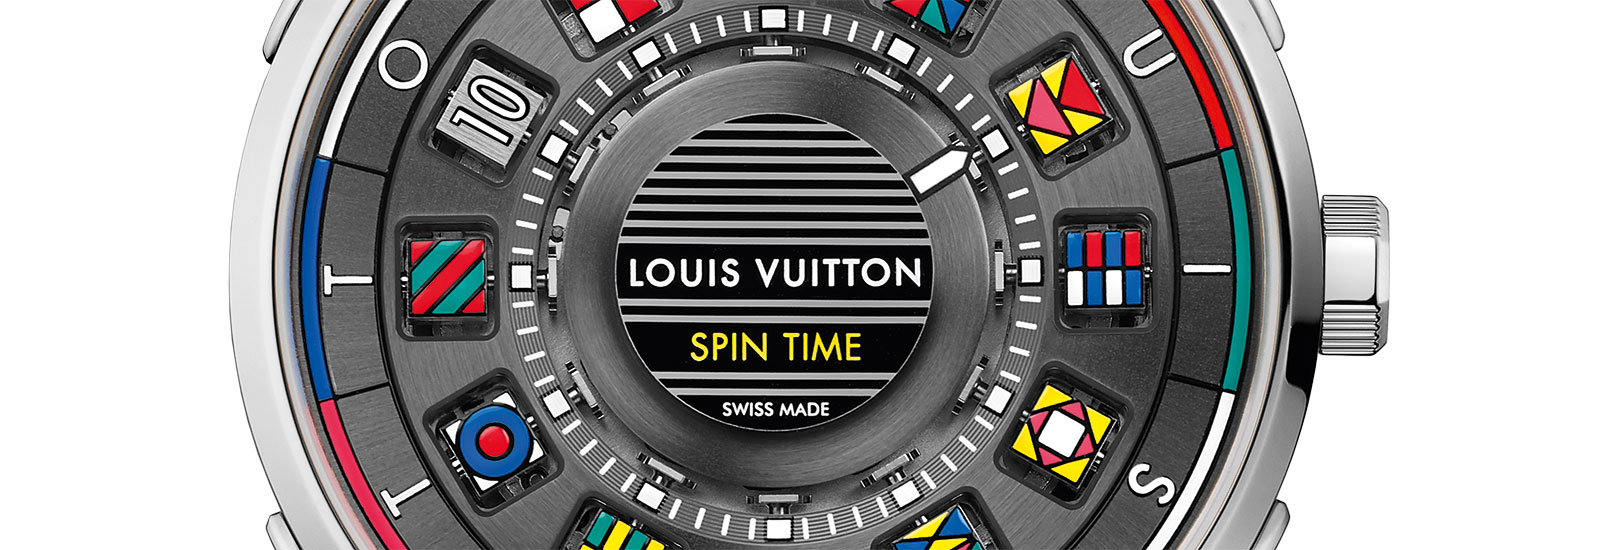 Louis Vuitton Escale Spin Time 2